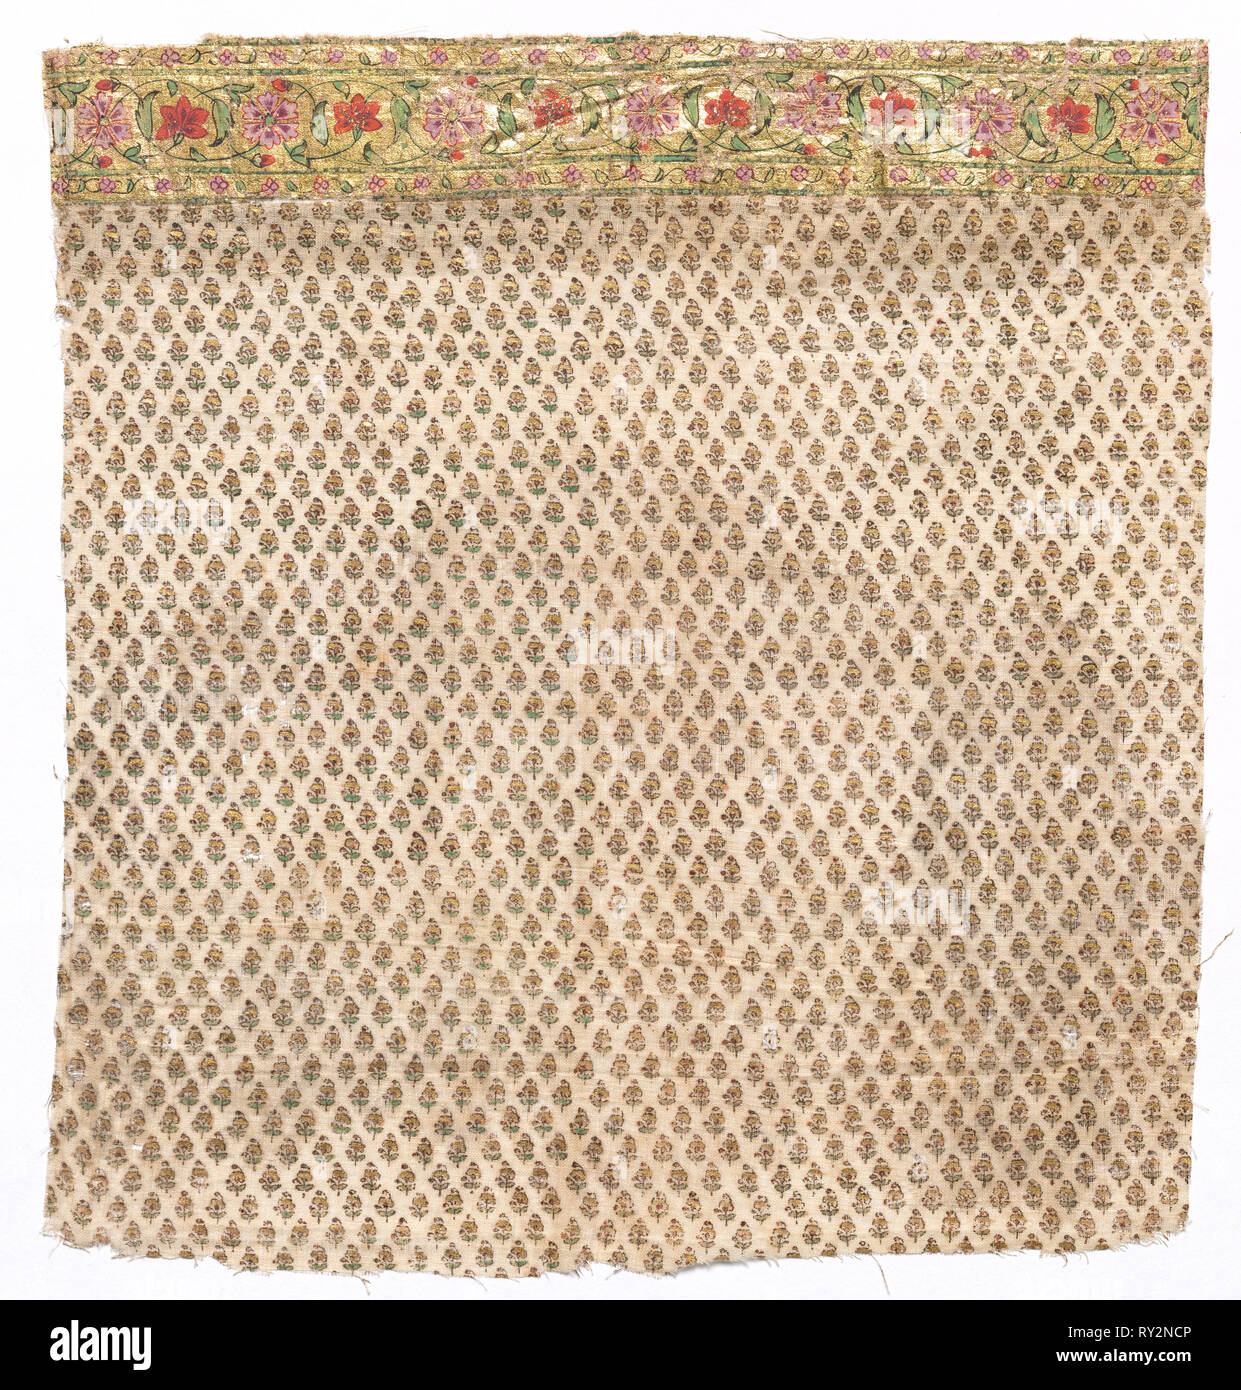 Fragment of a Draped Garment worn by Members of Court for Festive Occasions, late 1700s or early 1800s. India, late 18th or early 19th century. Block printed and painted with pigments and gold leaf on cotton; overall: 28.3 x 27.3 cm (11 1/8 x 10 3/4 in - Stock Image